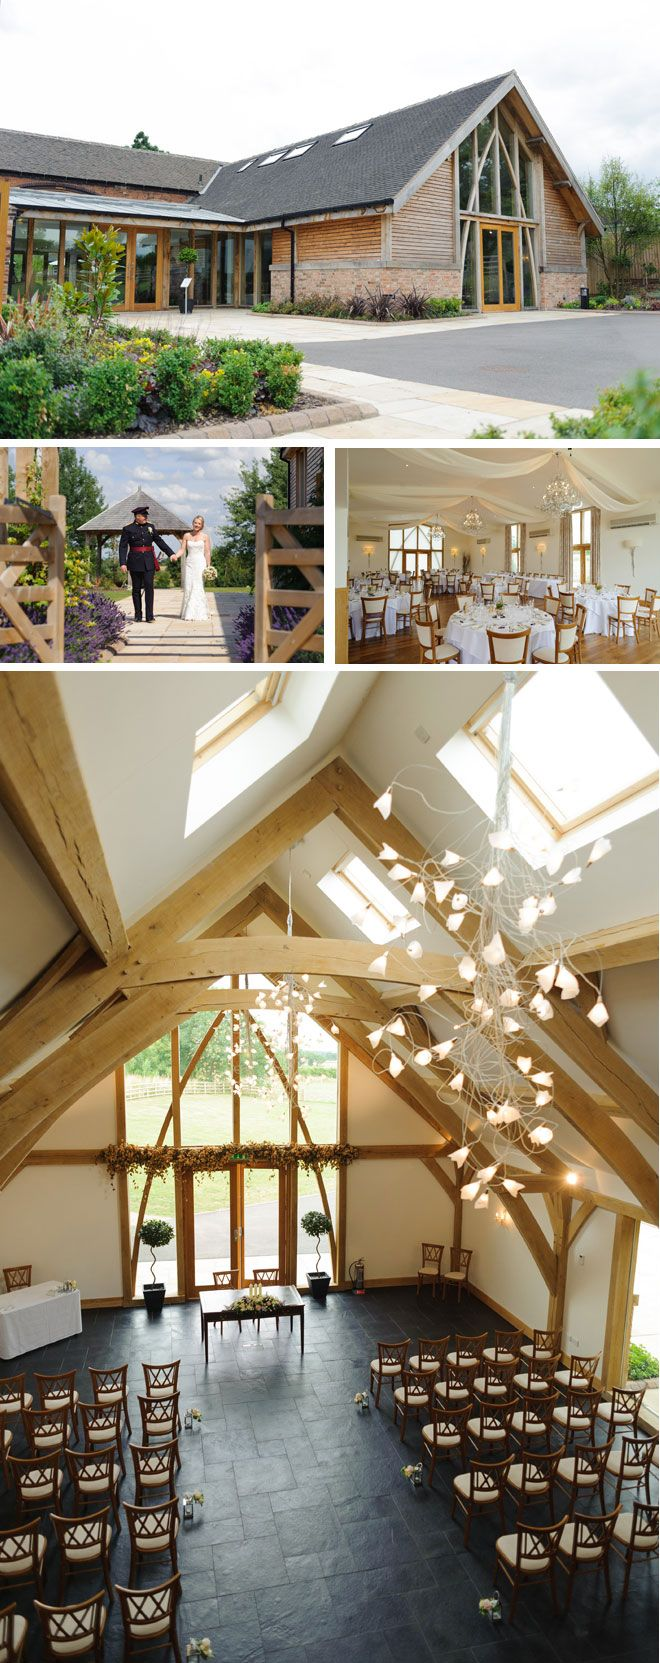 Tradition meets elegance at this fantastic barn wedding venue in Leicestershire. Images © Richard Shepherd Photographer | Visit wedding-venues.co.uk